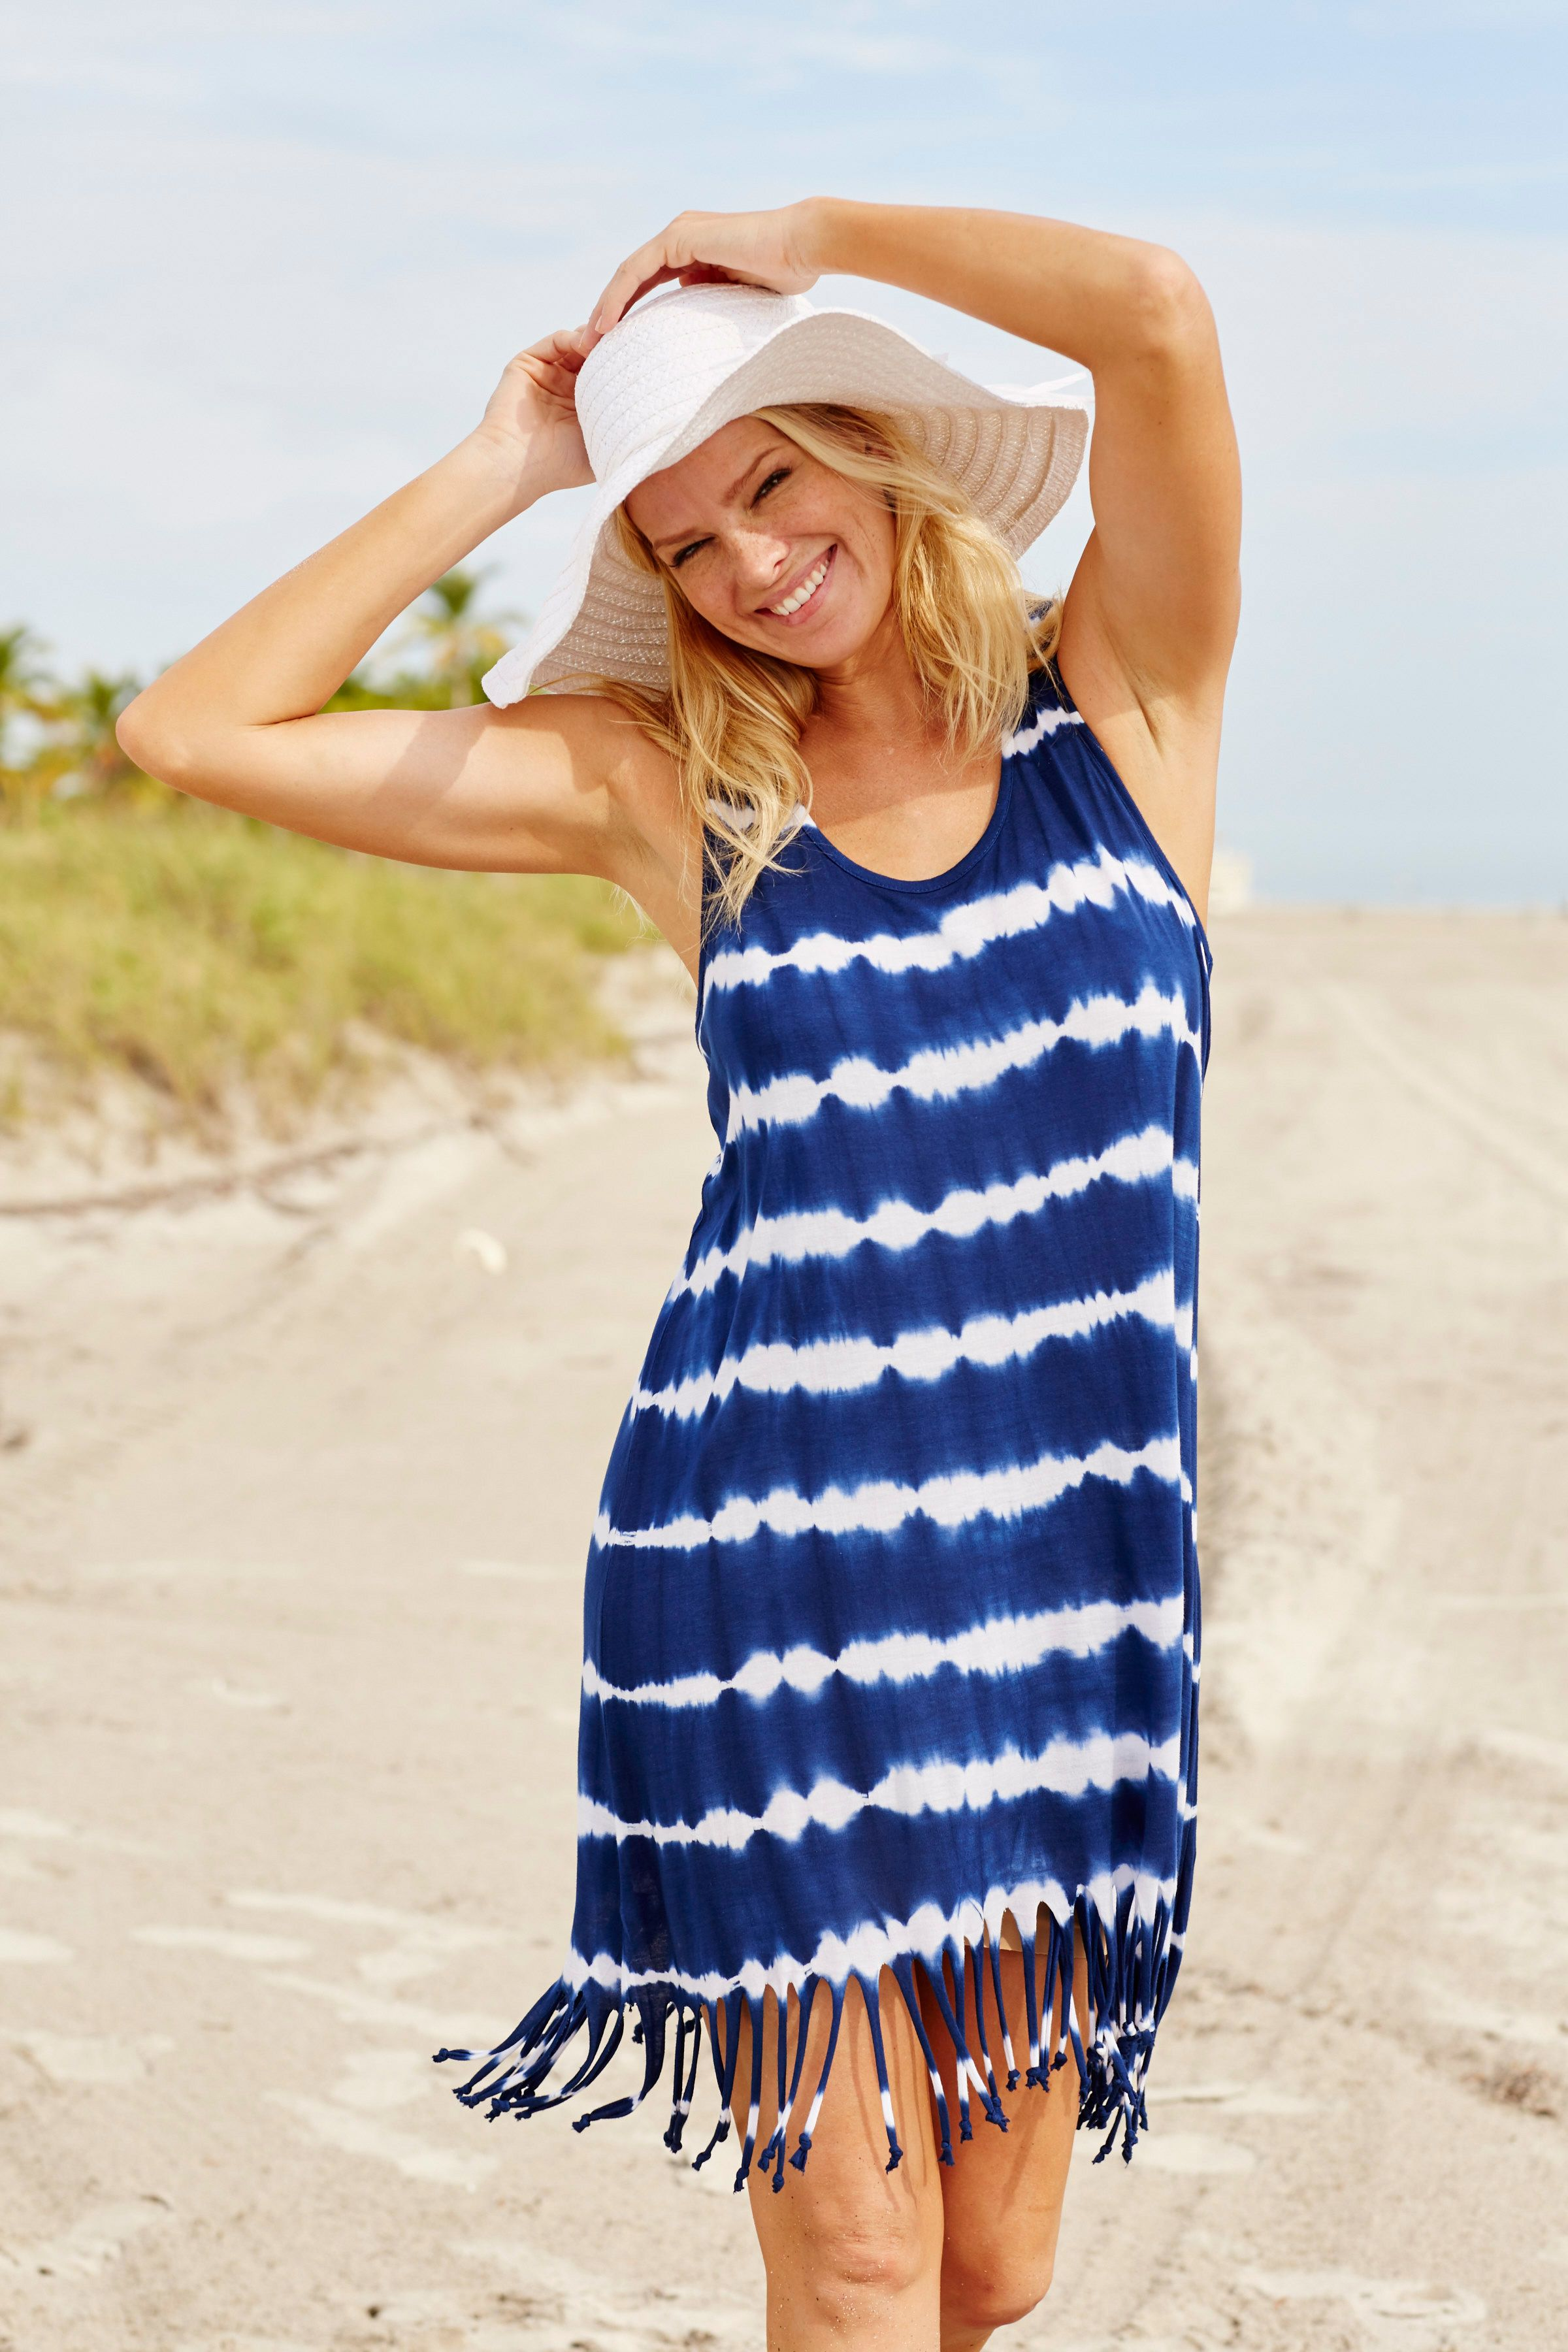 89dfbe6df Boho beach vibes! Fringe hem cover-up, wide brim hat and a whole lot of  sunshine! Plus Size Fashion from Woman Within.